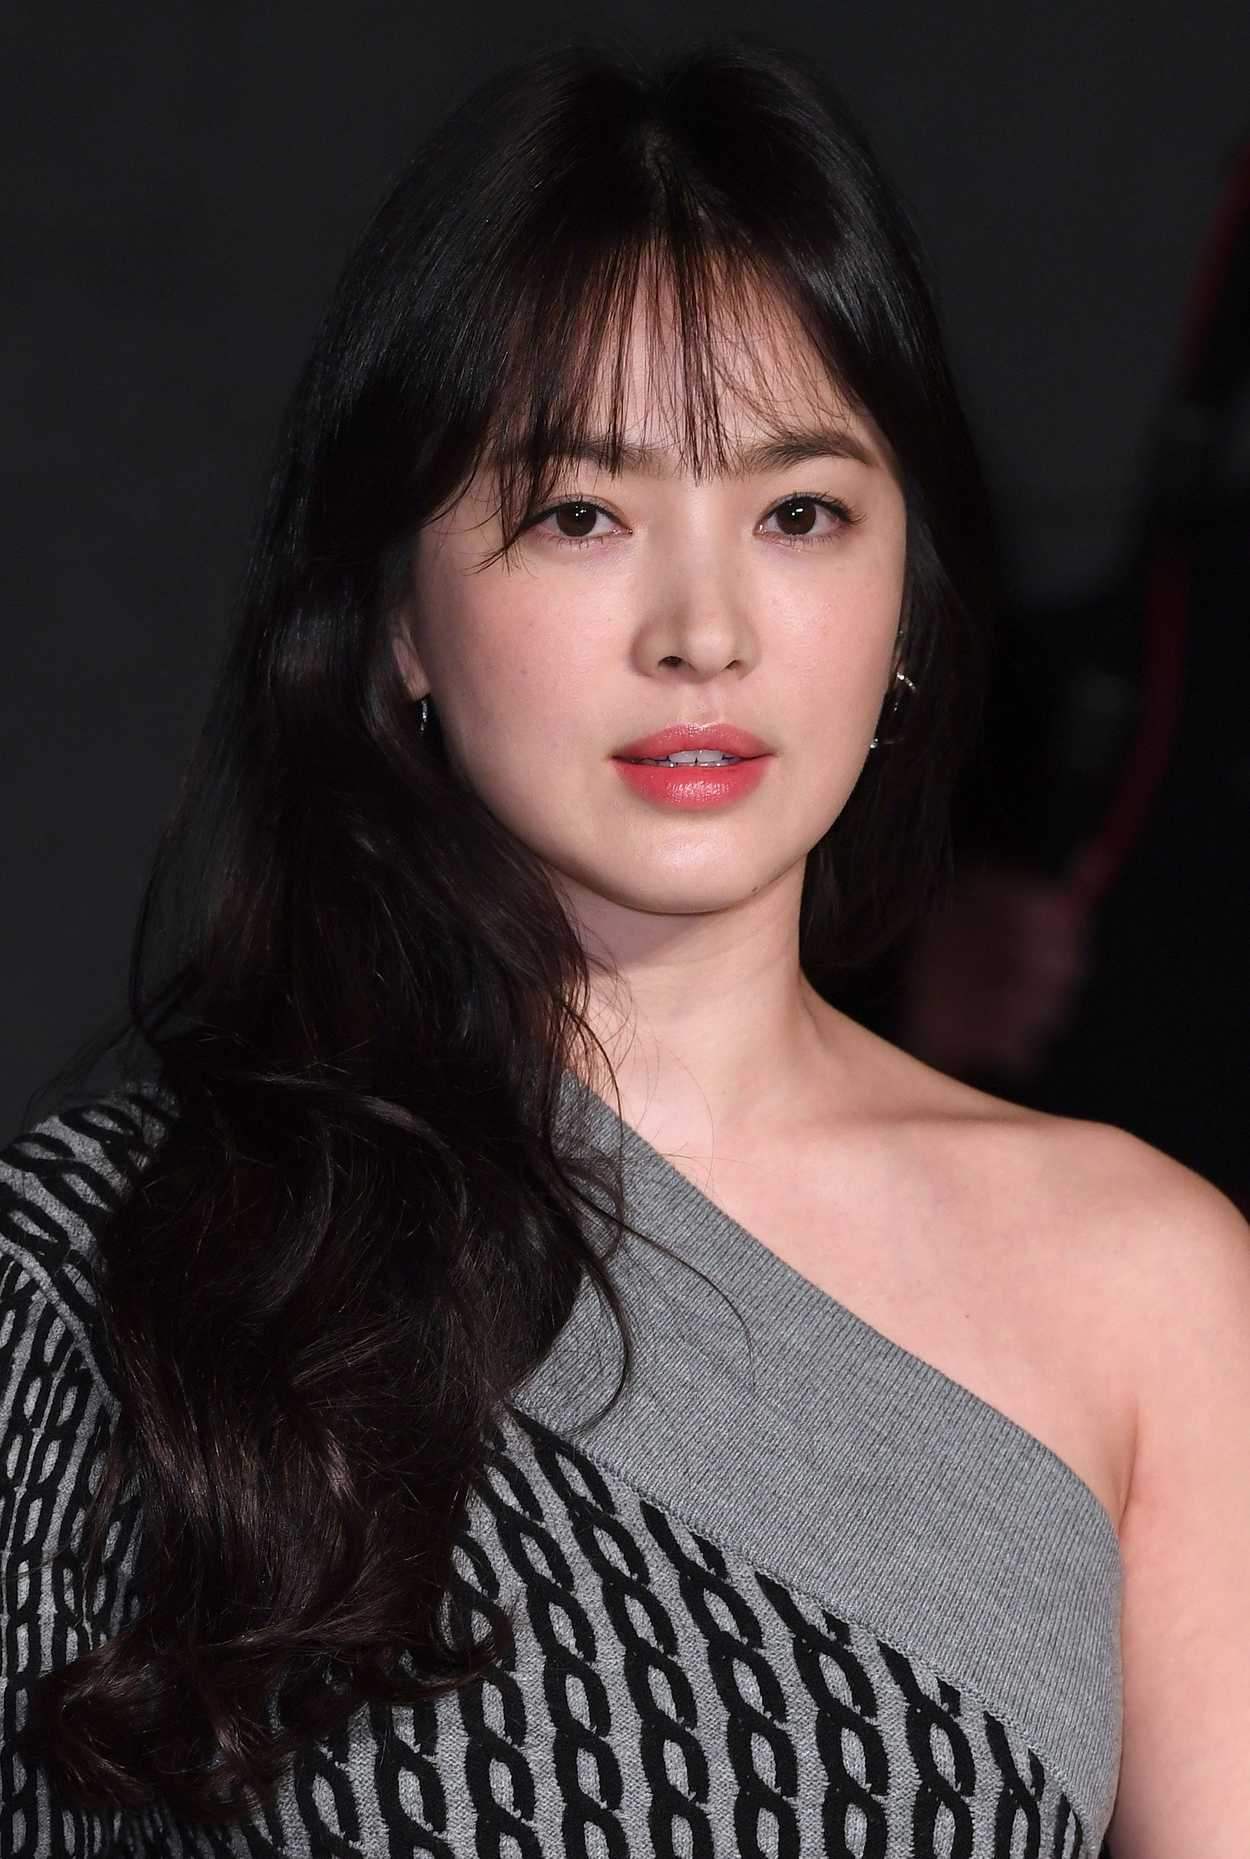 Song Hye Kyo At The Burberry Show During The London Fashion Week 02 20 2017